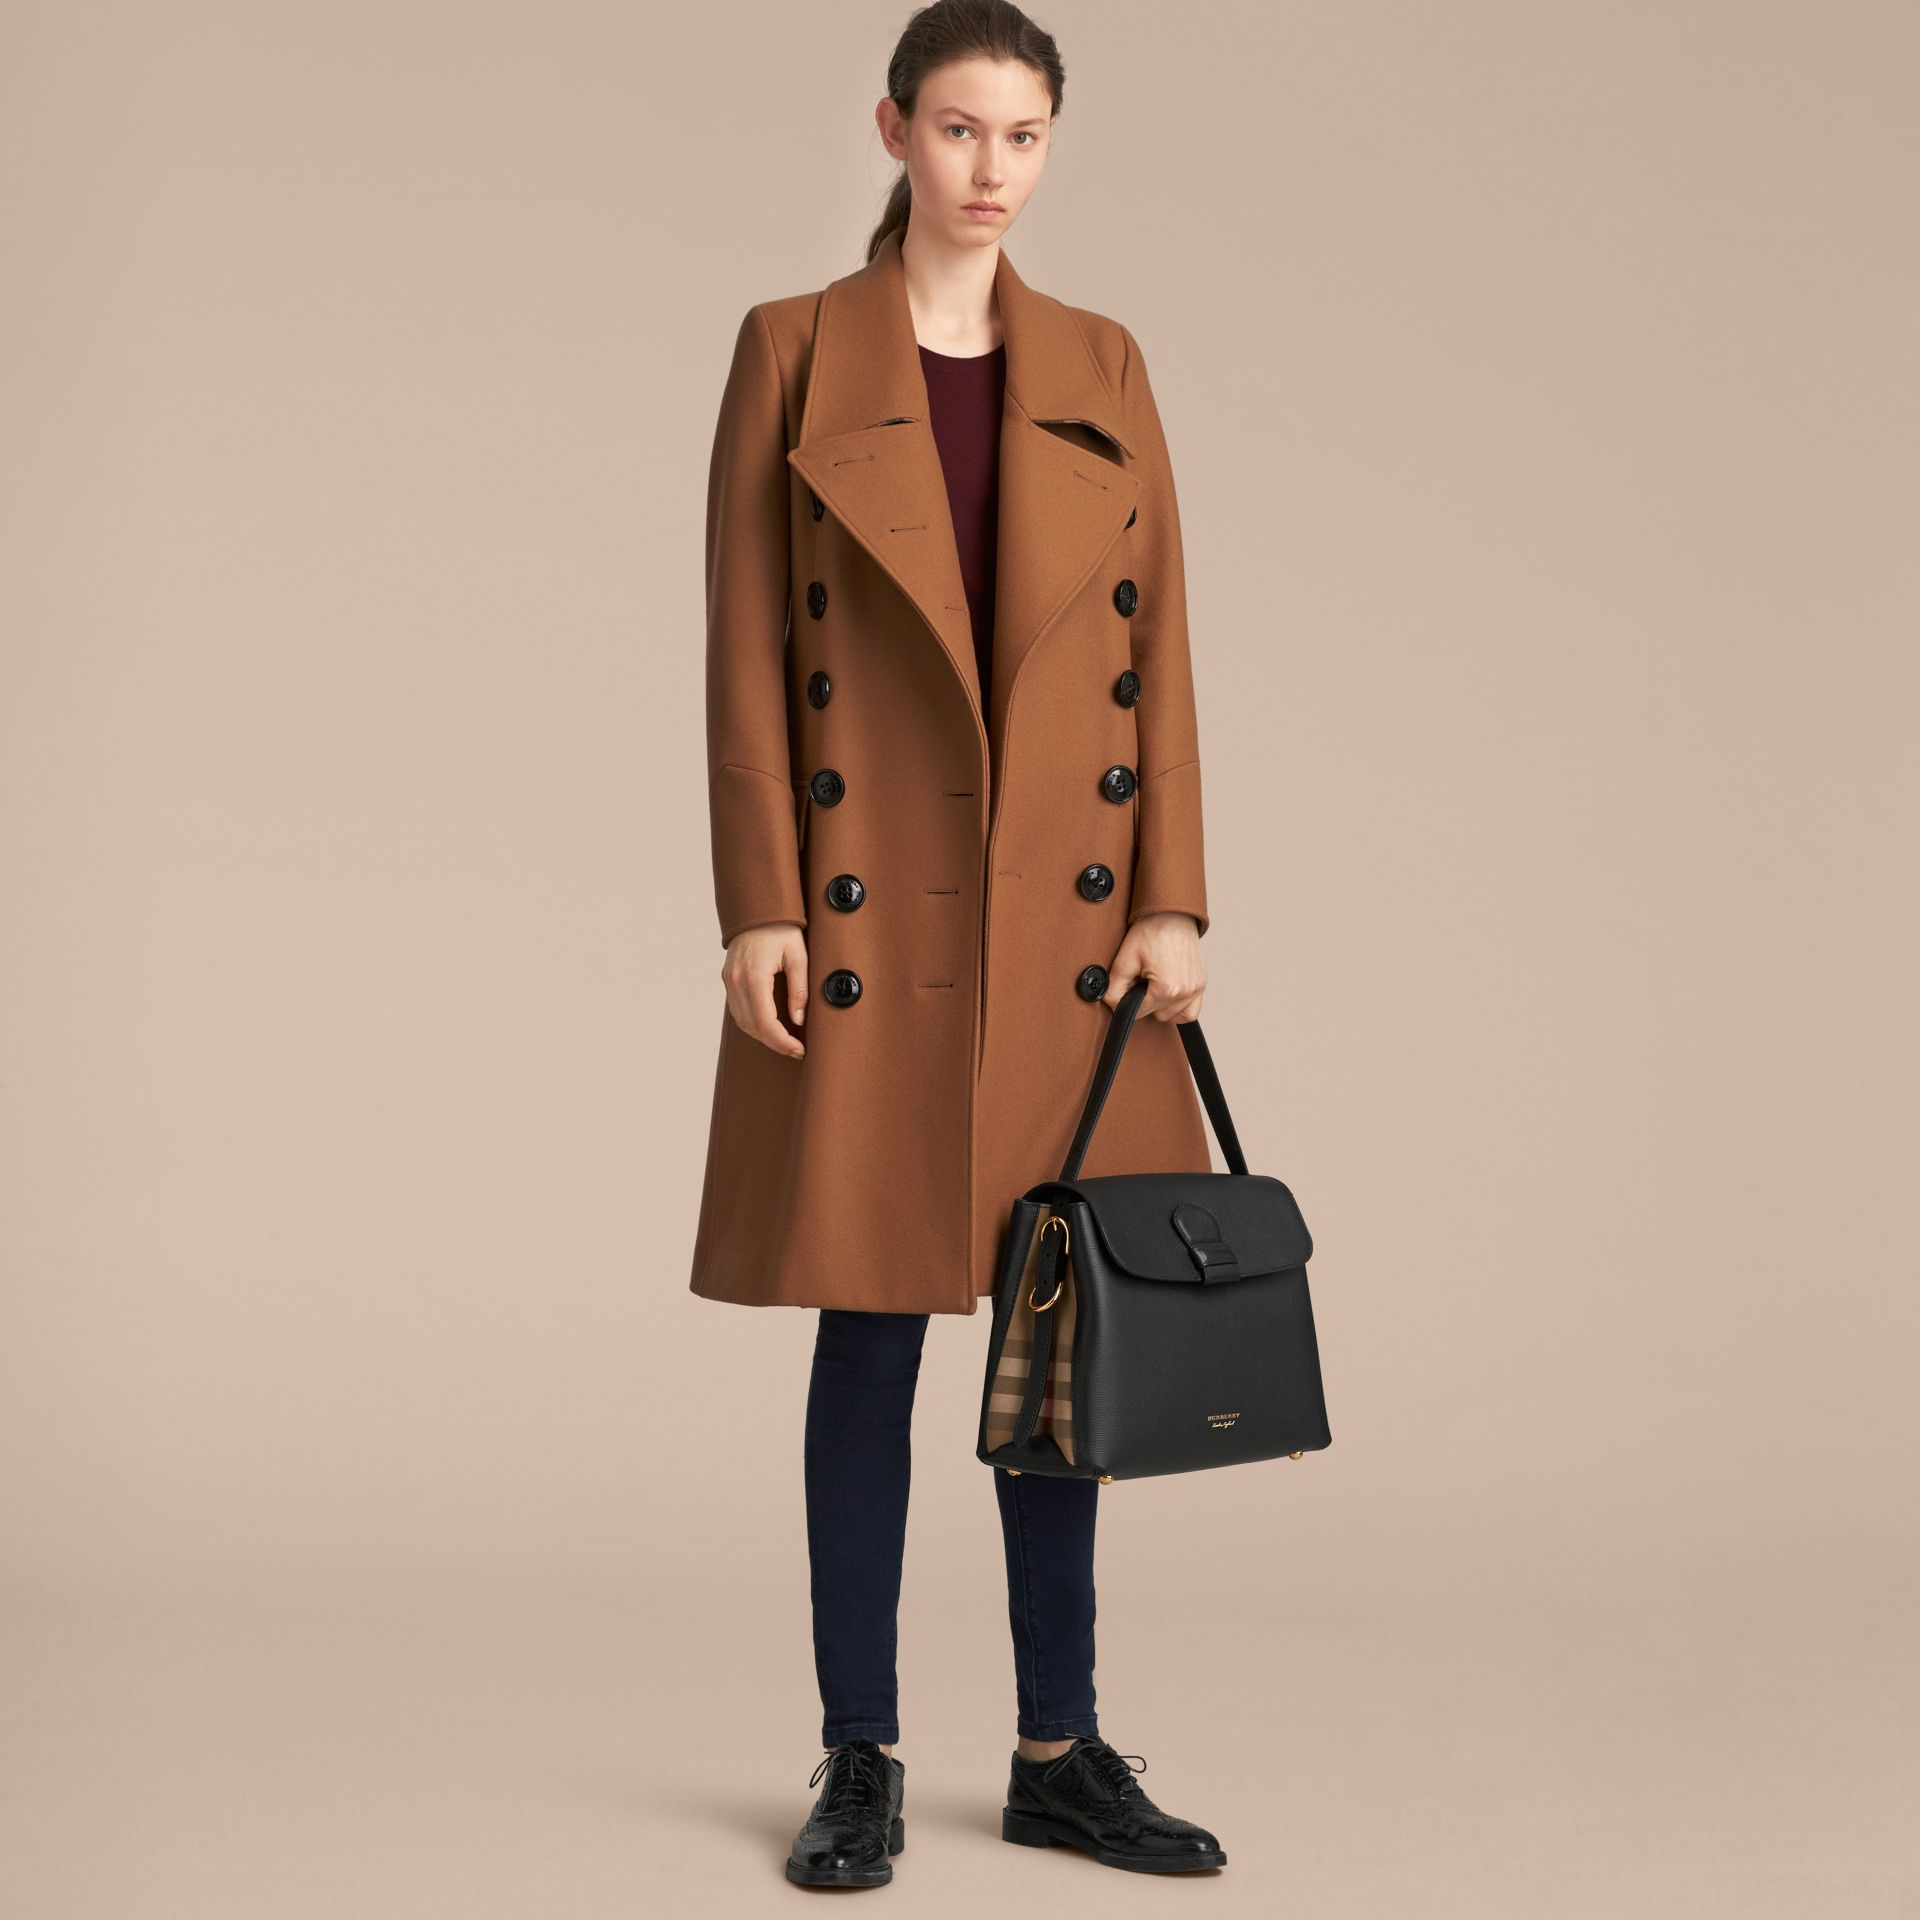 Sac tote medium en cuir grainé et coton House check (Noir) - Femme | Burberry - photo de la galerie 3